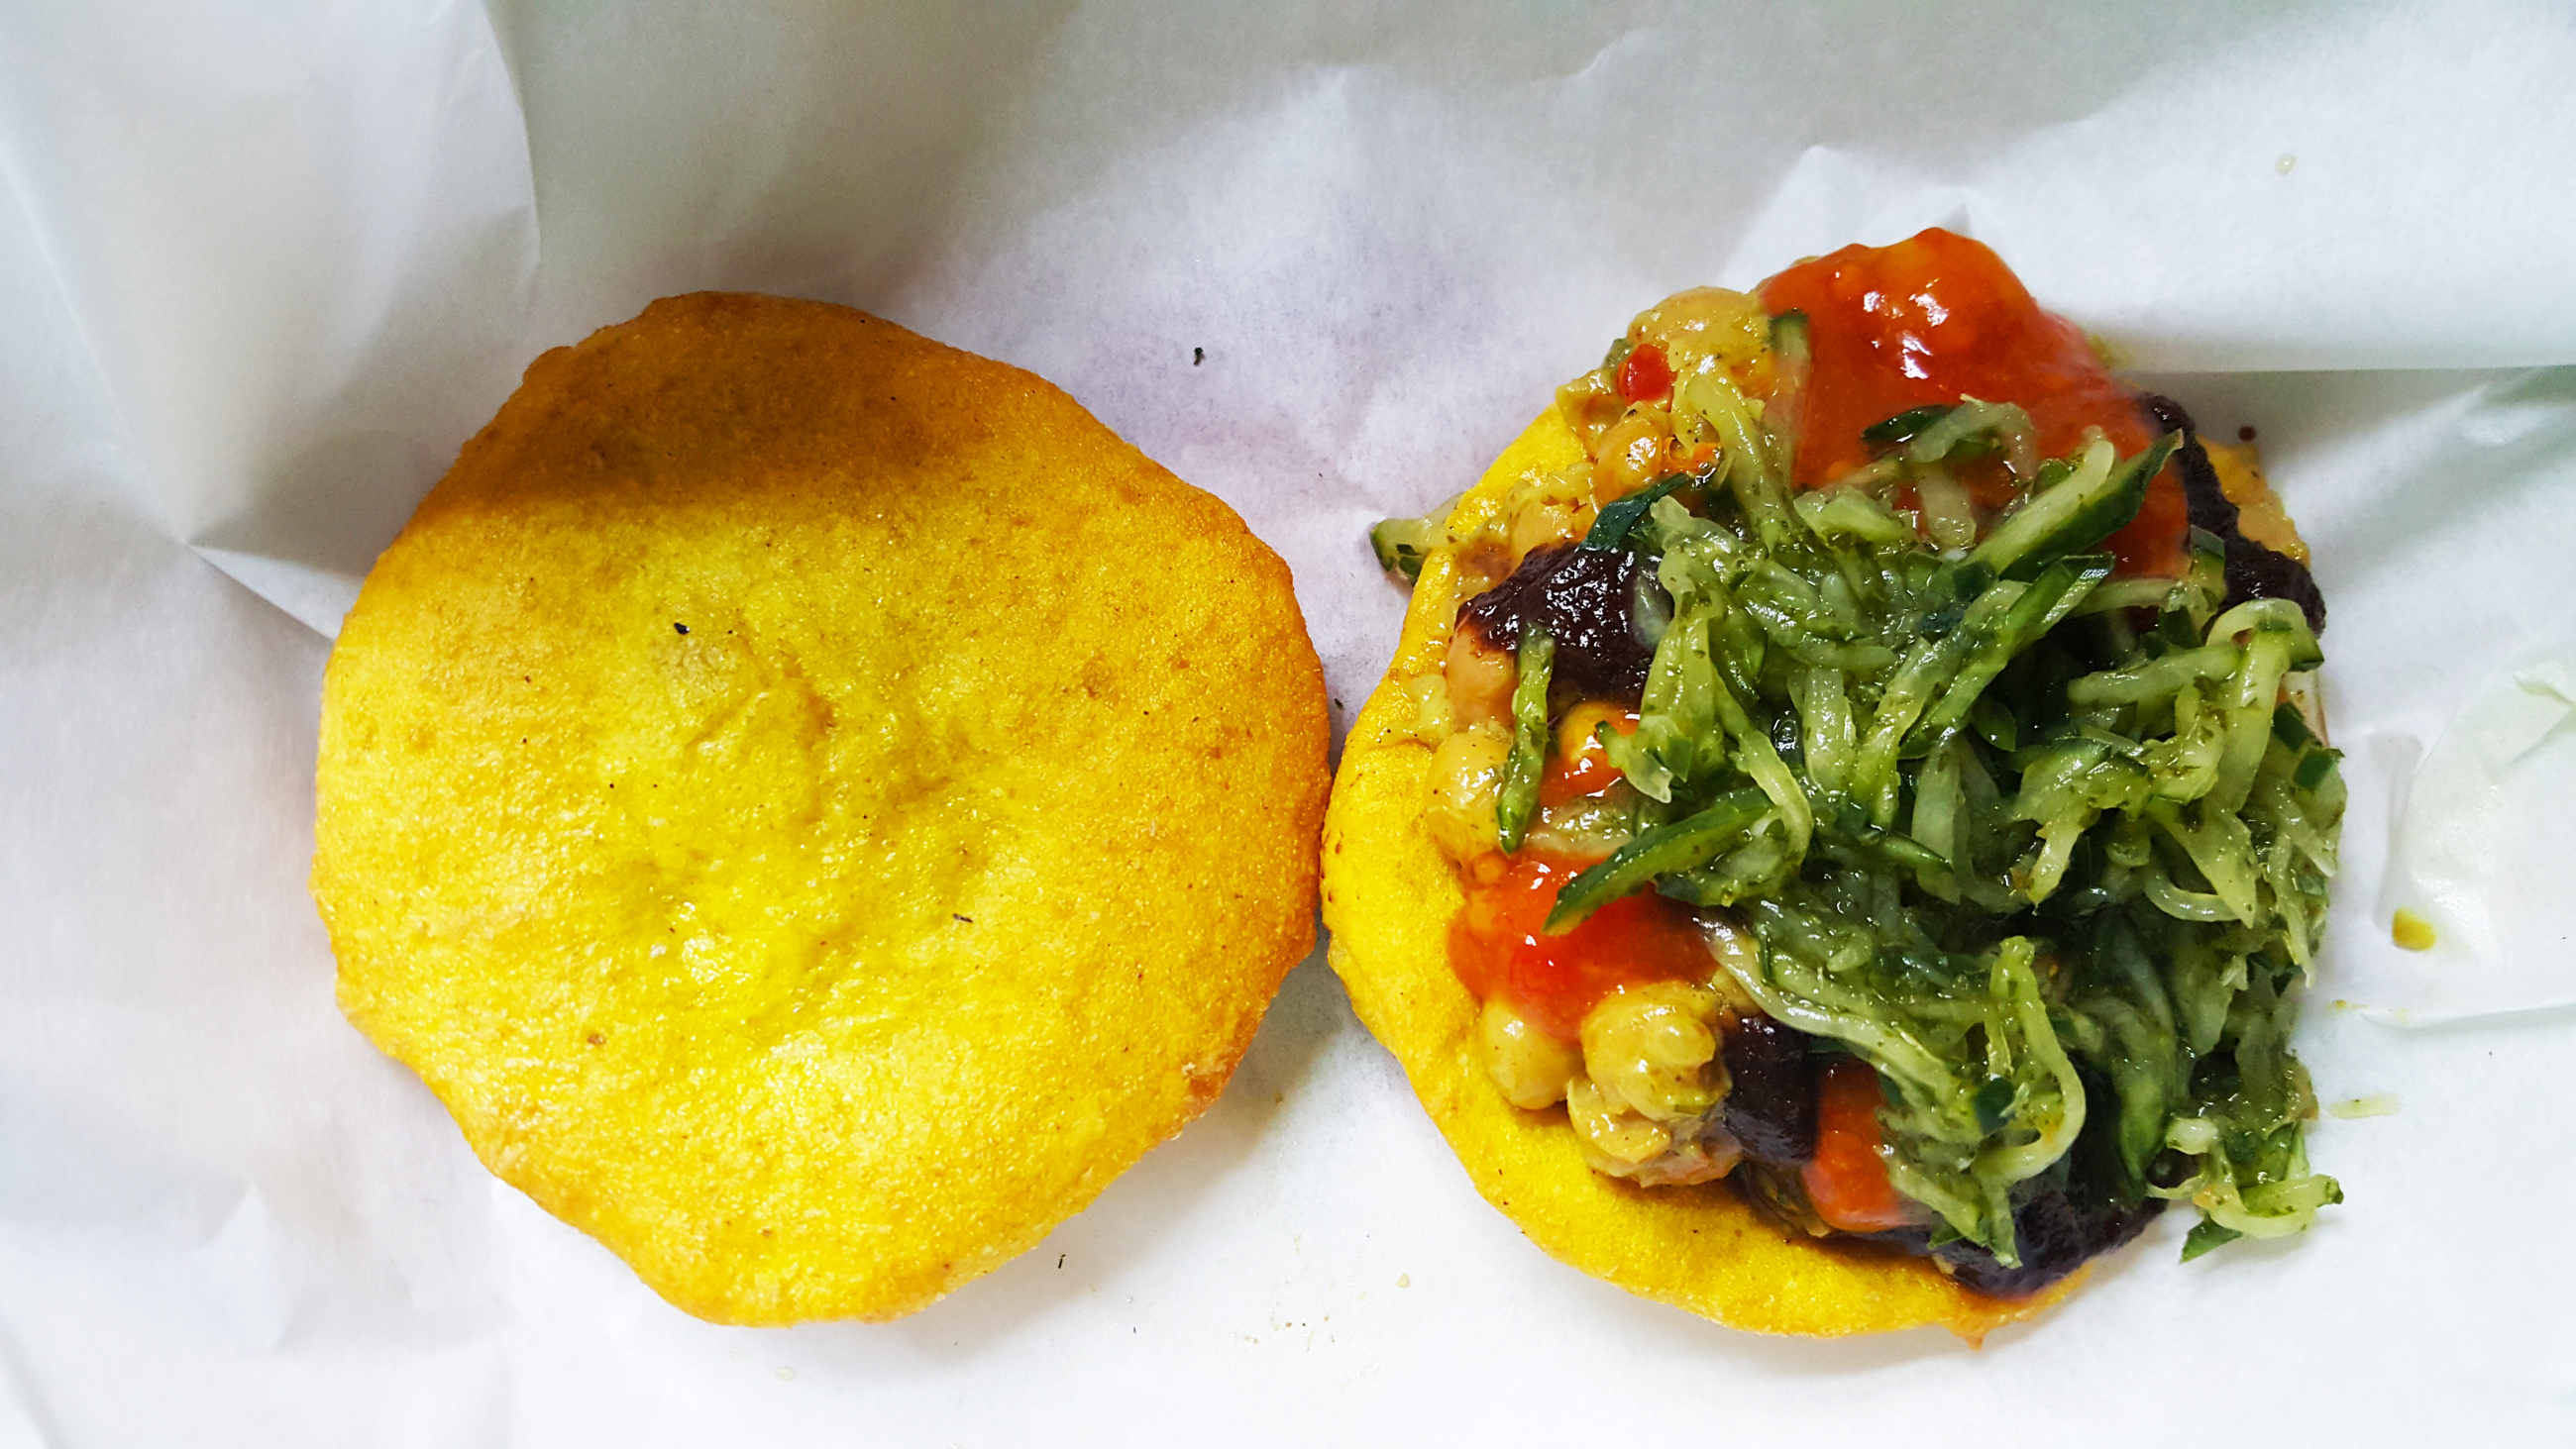 Doubles from Trinidad, a Sandwich with a Story